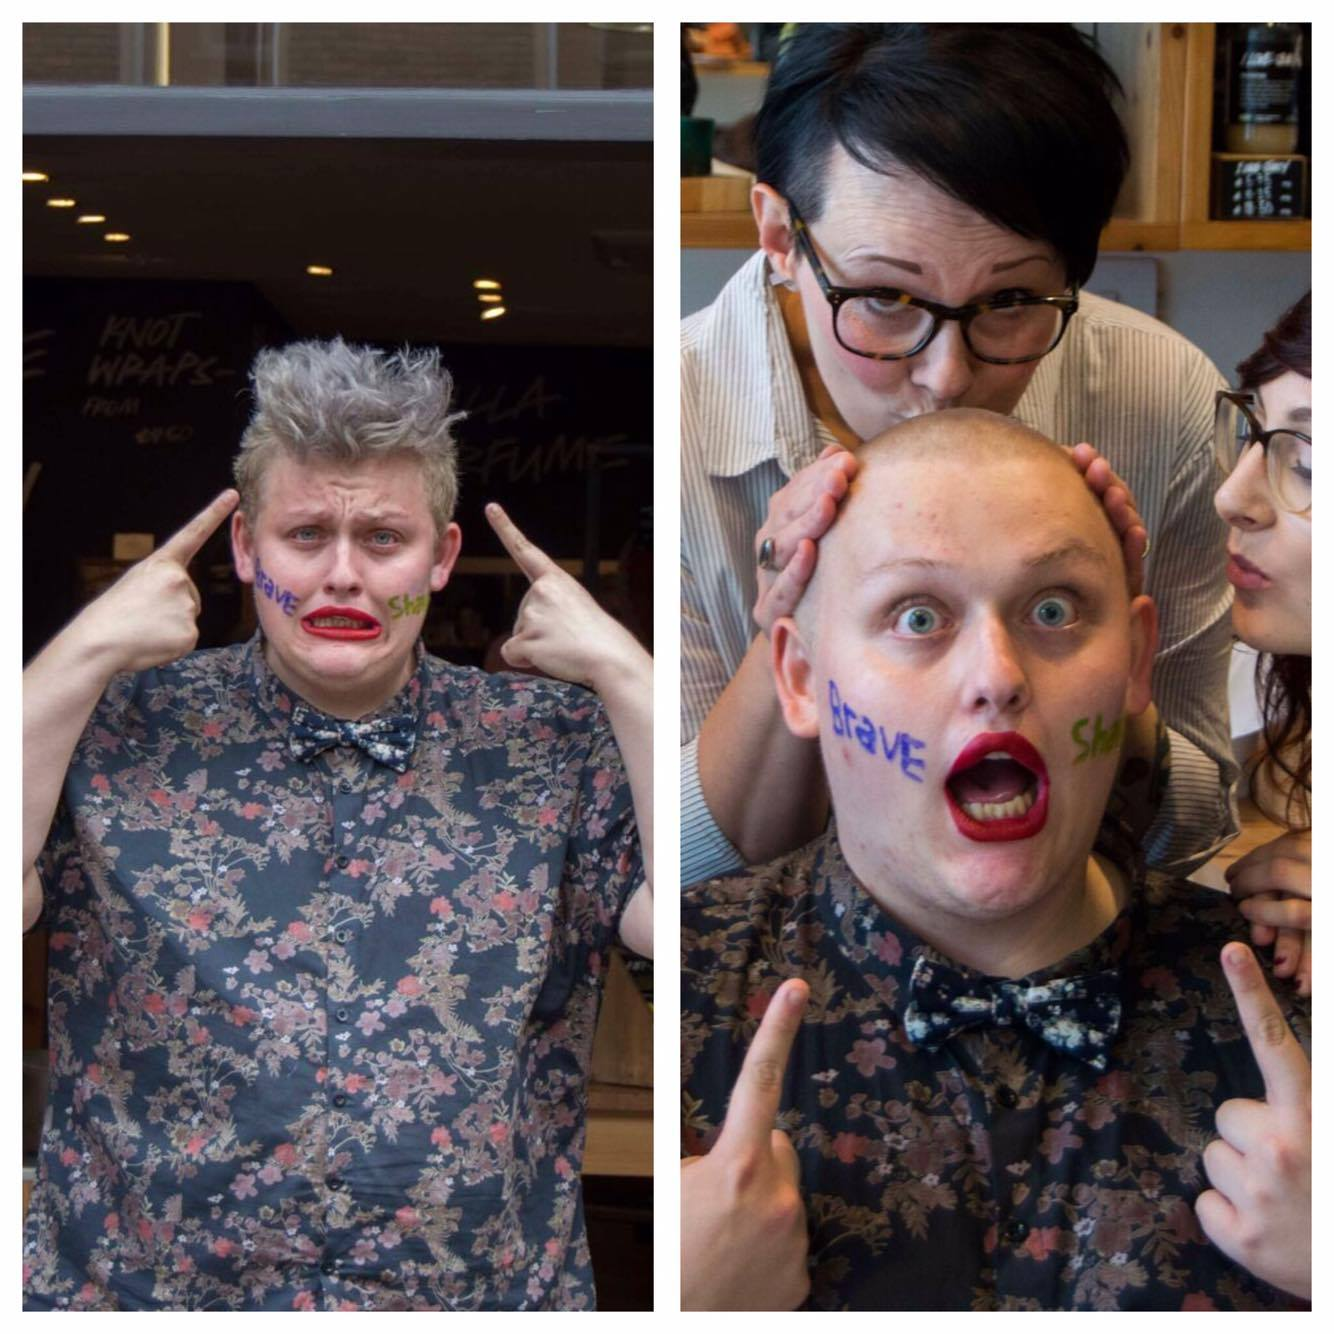 Jay sacrificed his hairdo to raise money for cancer research. Here's the before and after.